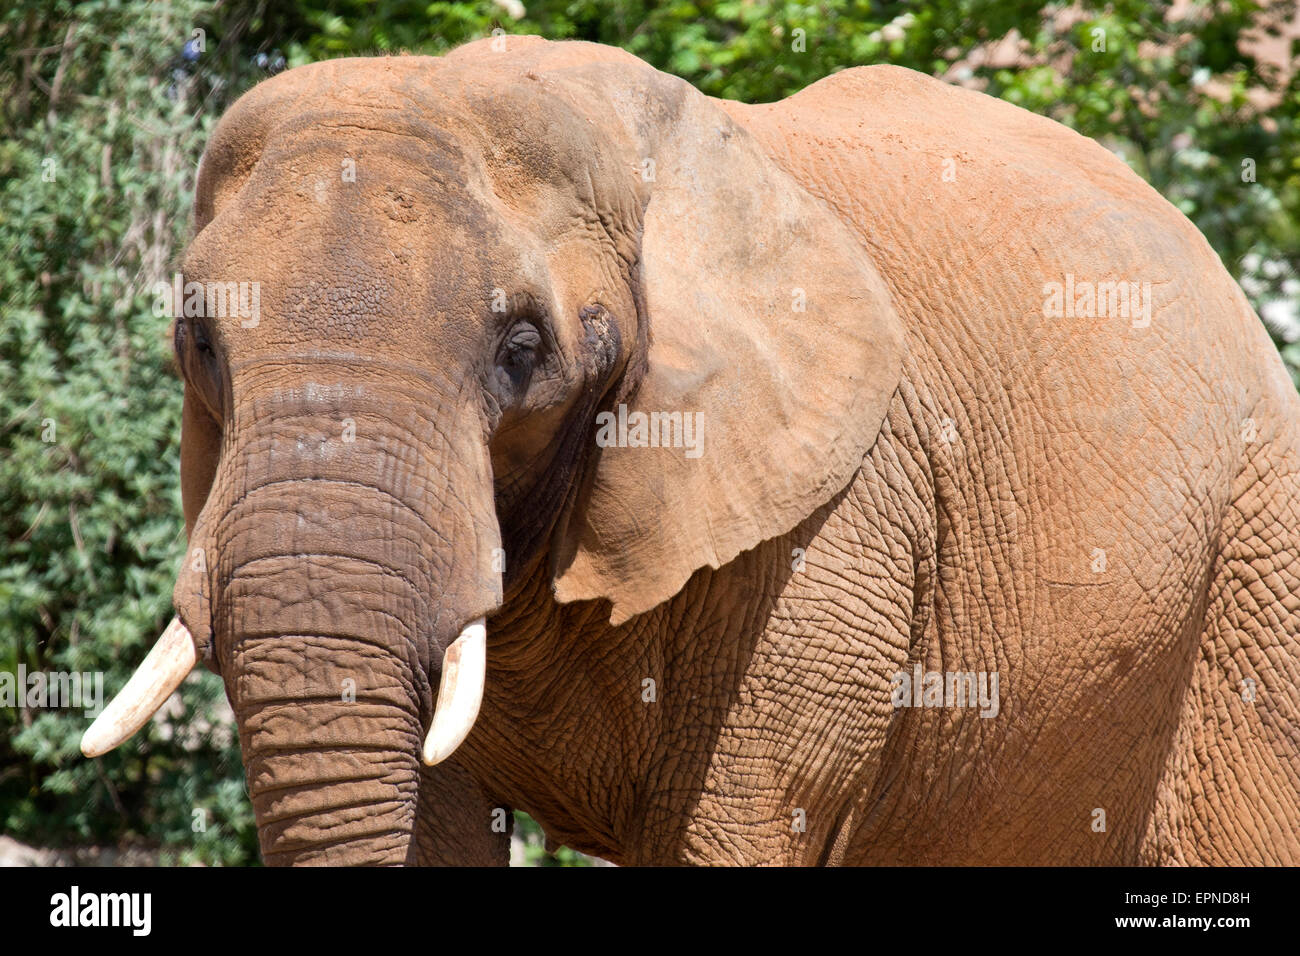 A head shot of an African Elephant - Stock Image